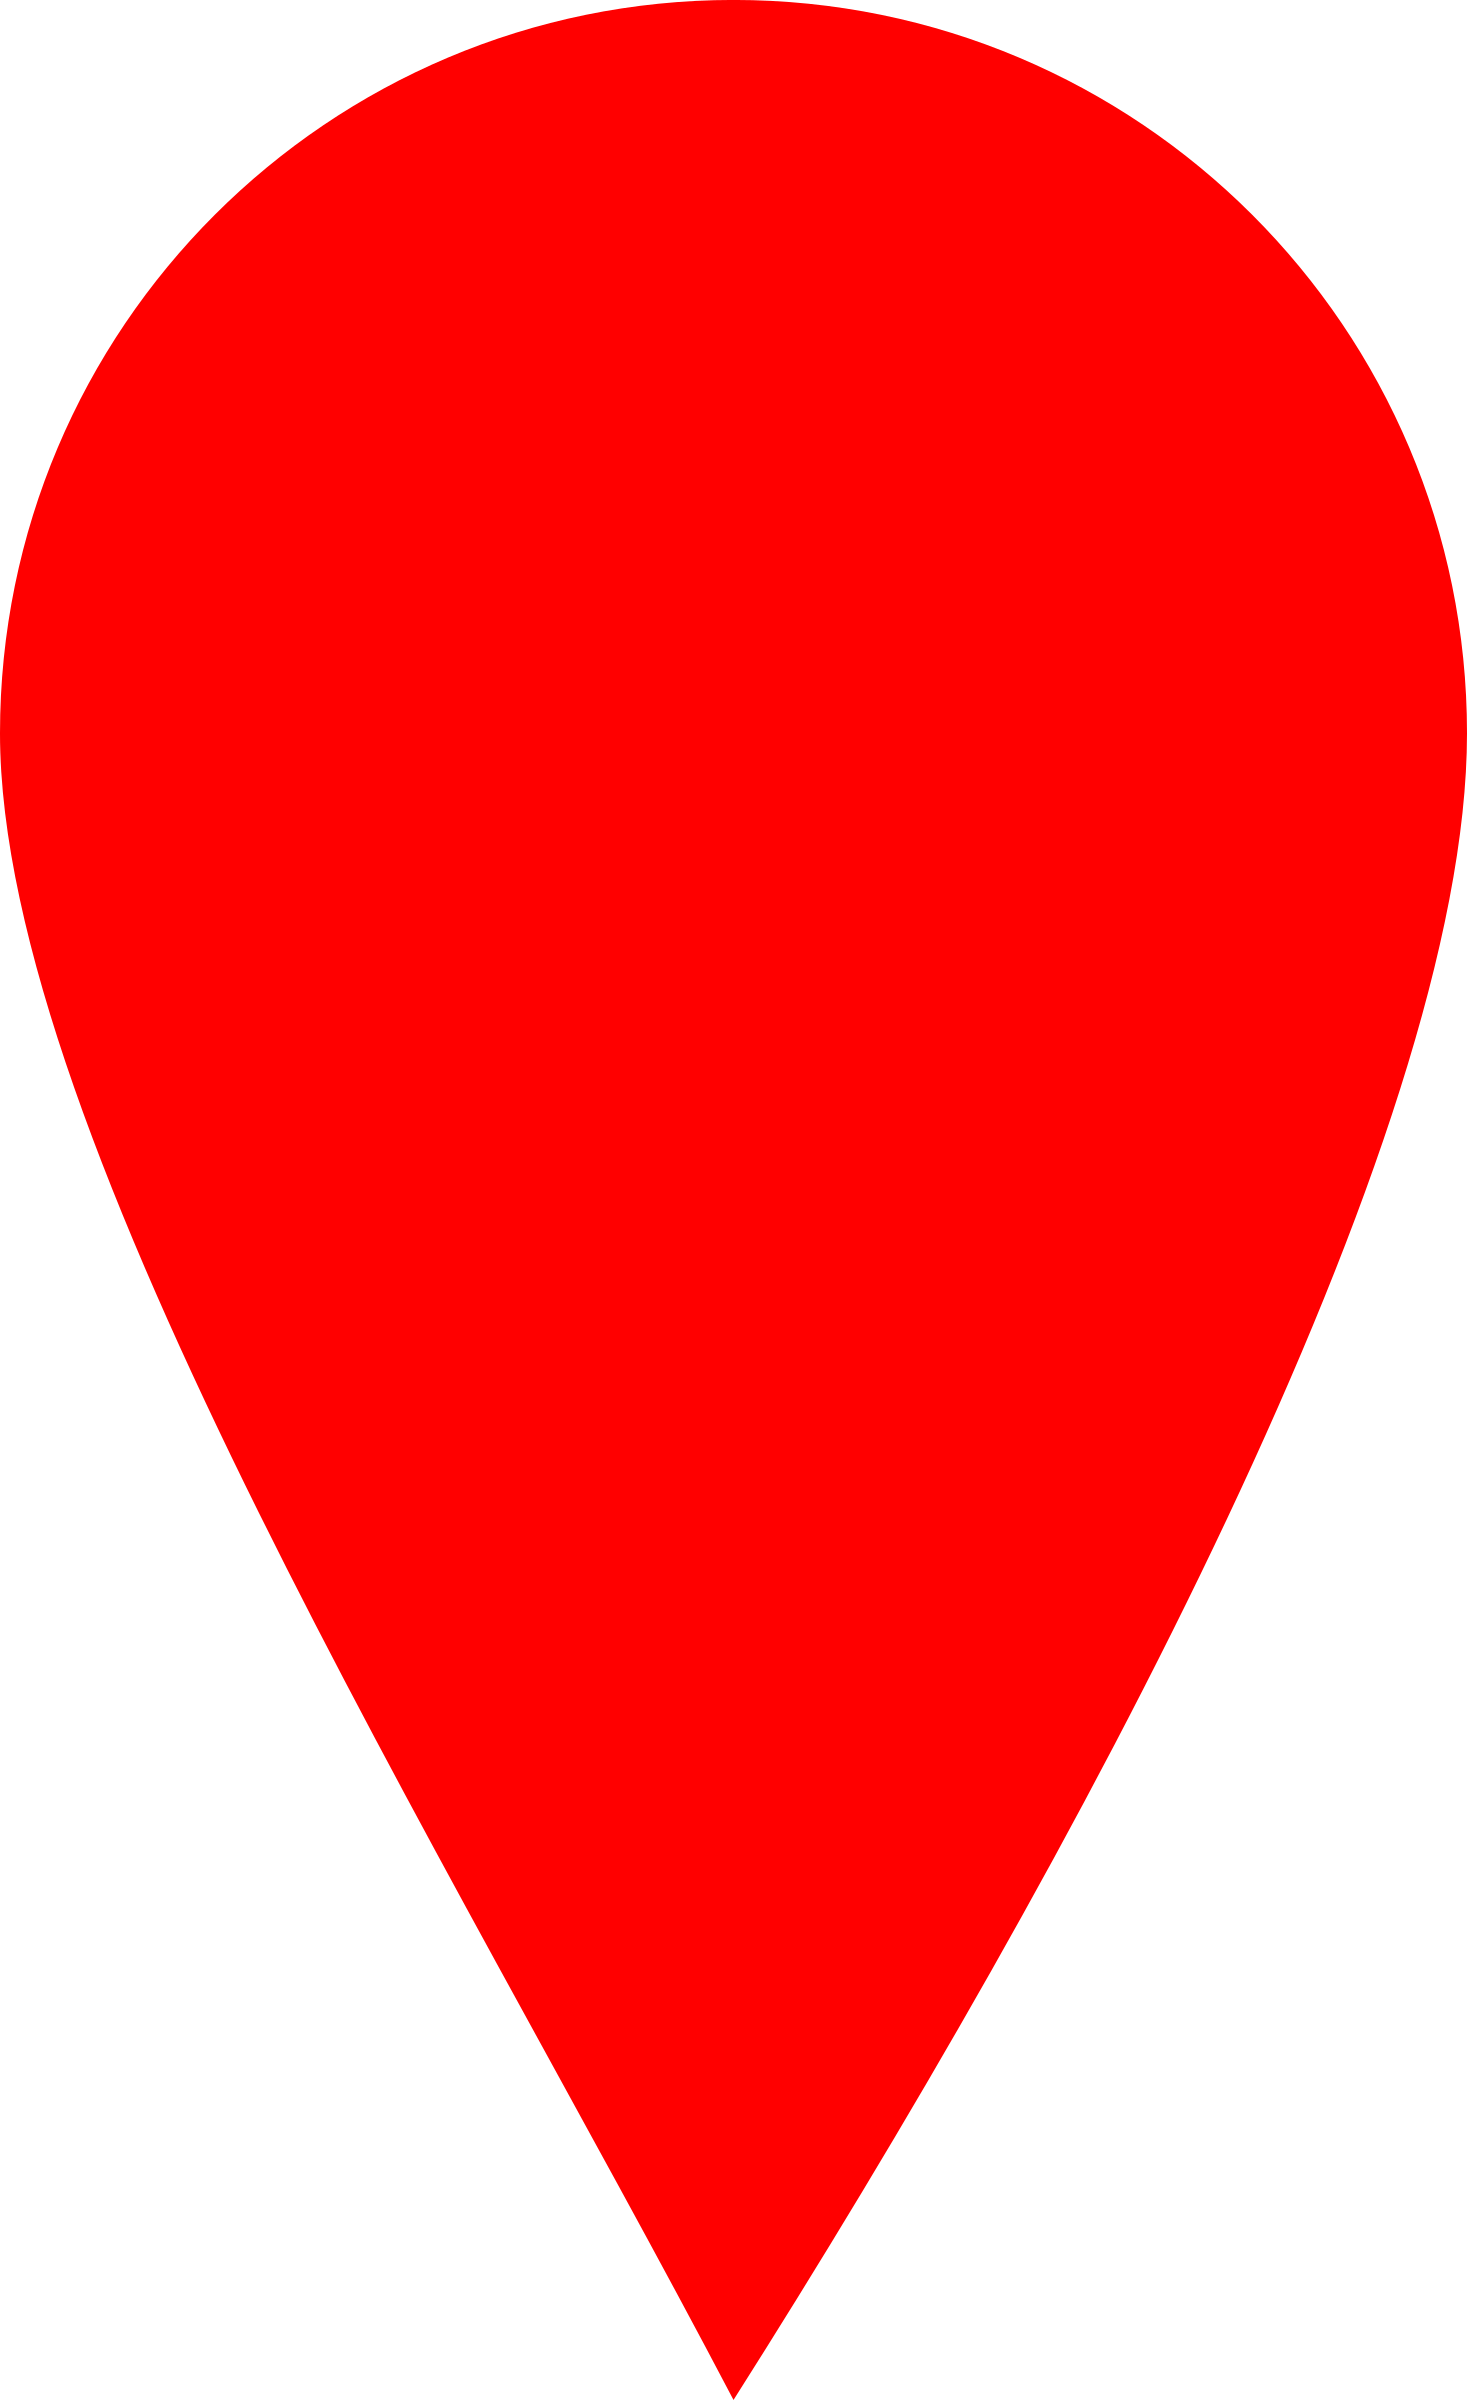 Red map locator marker. Markers clipart broadline